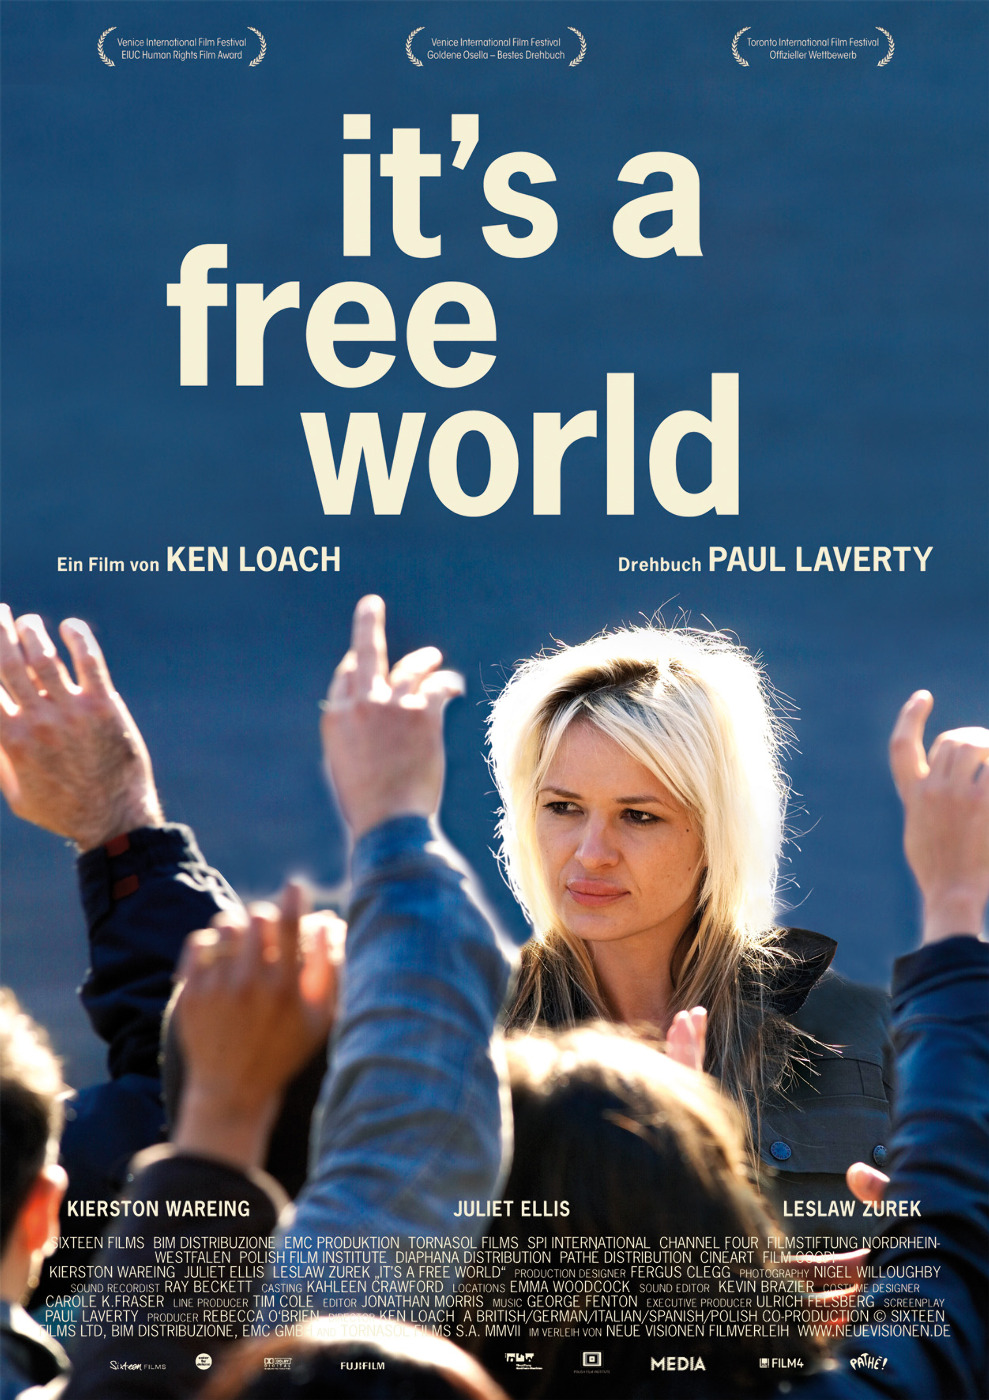 2007 Its a free world - En un mundo libre (ale) 01